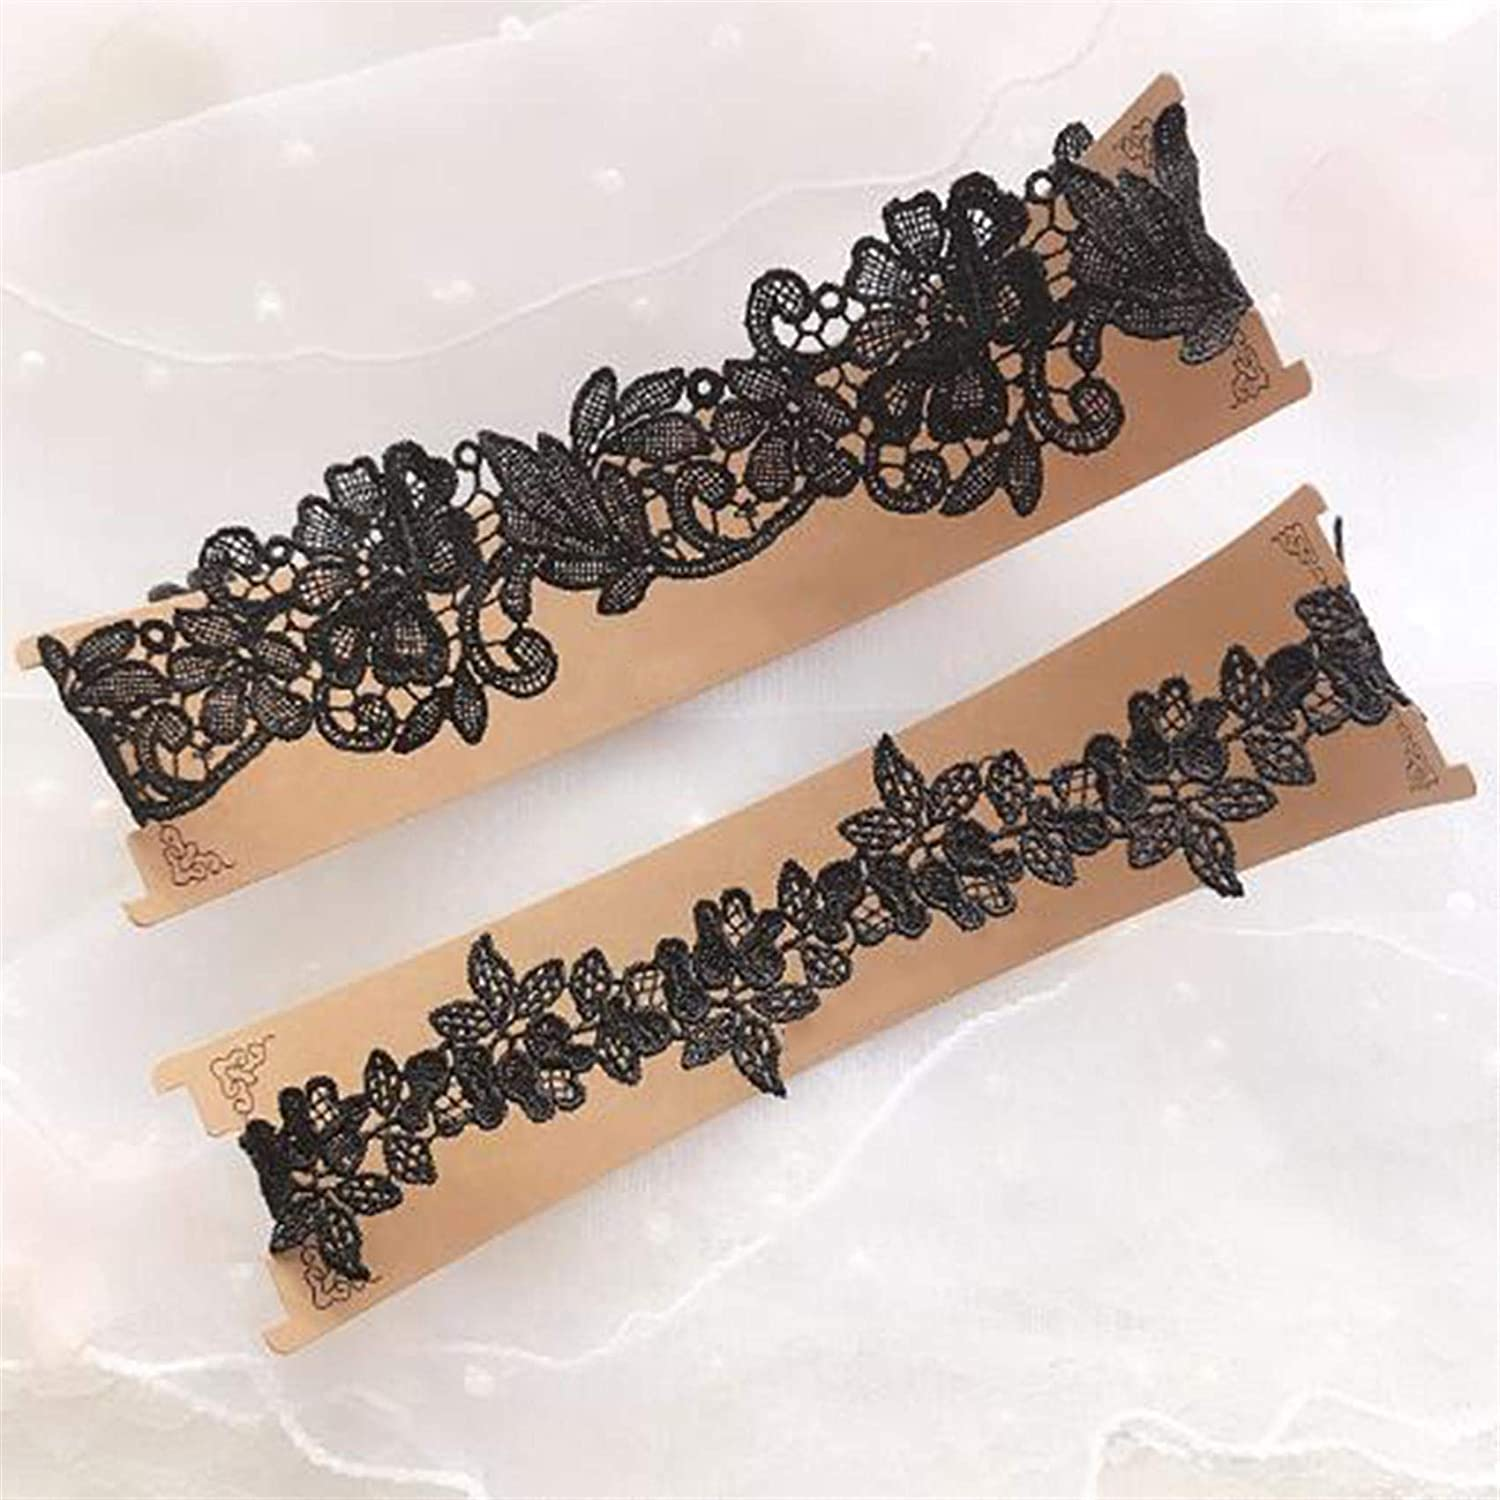 Fd.Gomdn 2 Pieces Ladies Lace Garter Ribbon Design Elasticated Garter for Wedding Prom Party